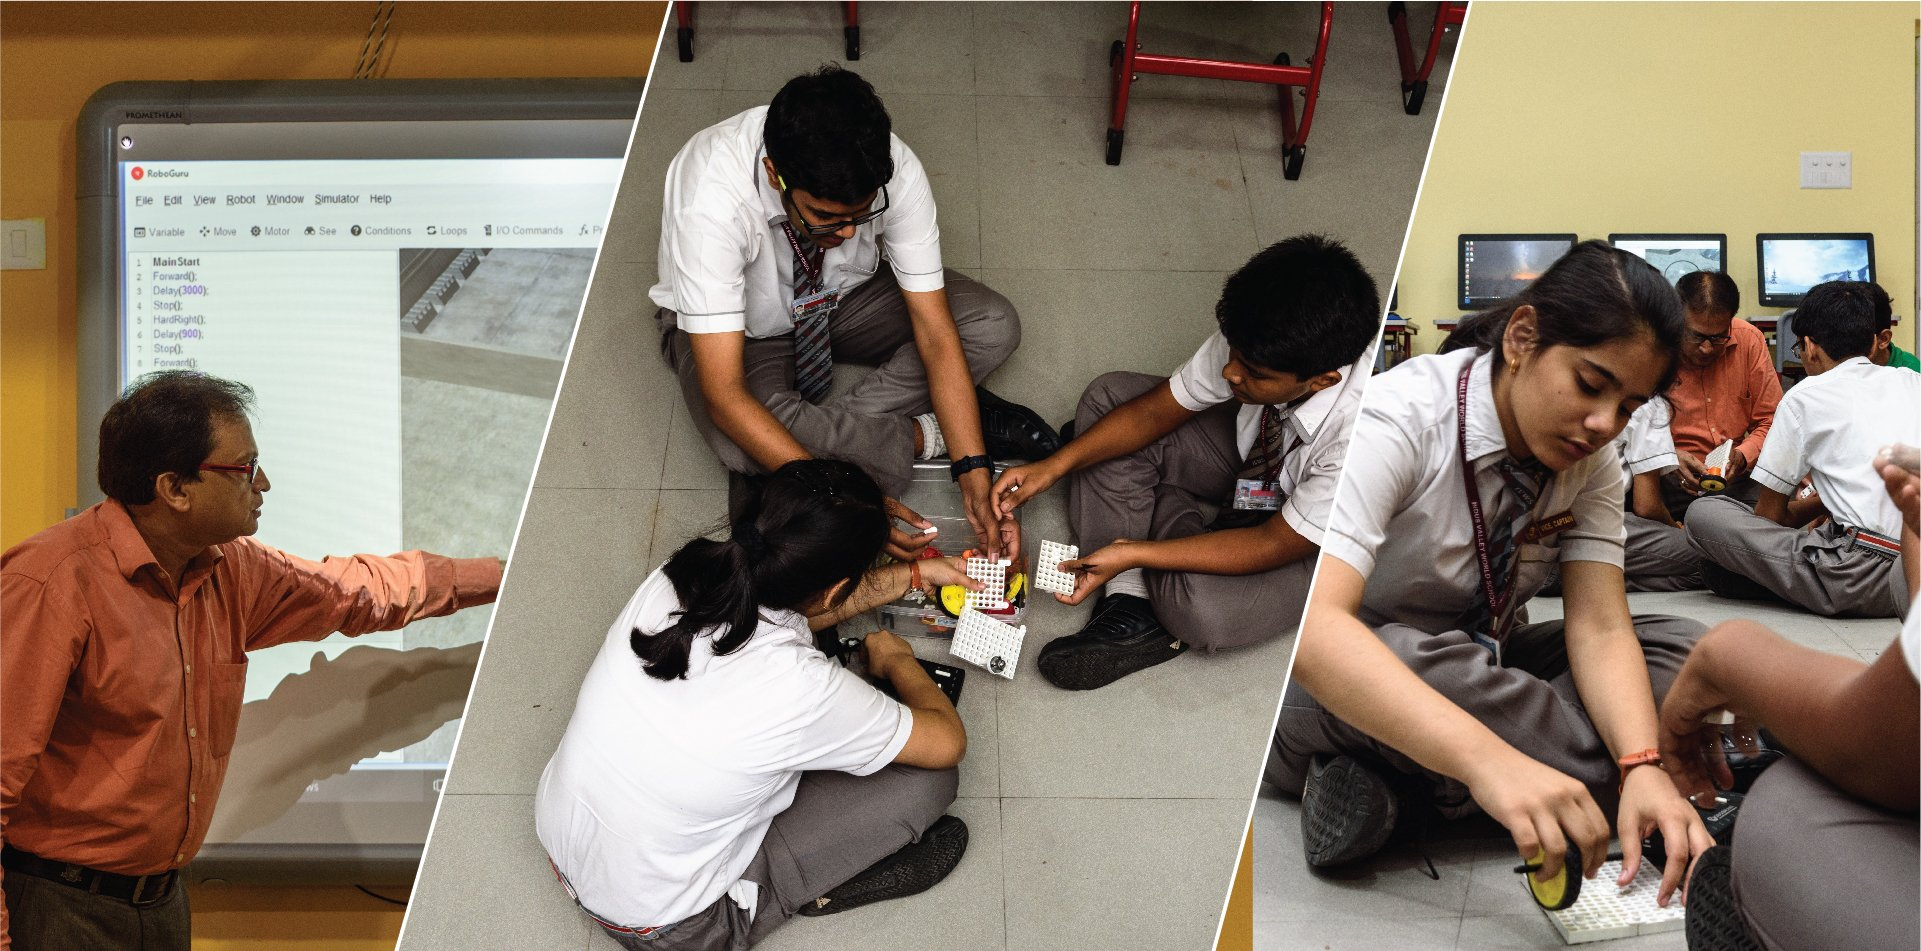 Indus Valley World School - Best CBSE Board English Medium School for admissions in South Kolkata, West Bengal